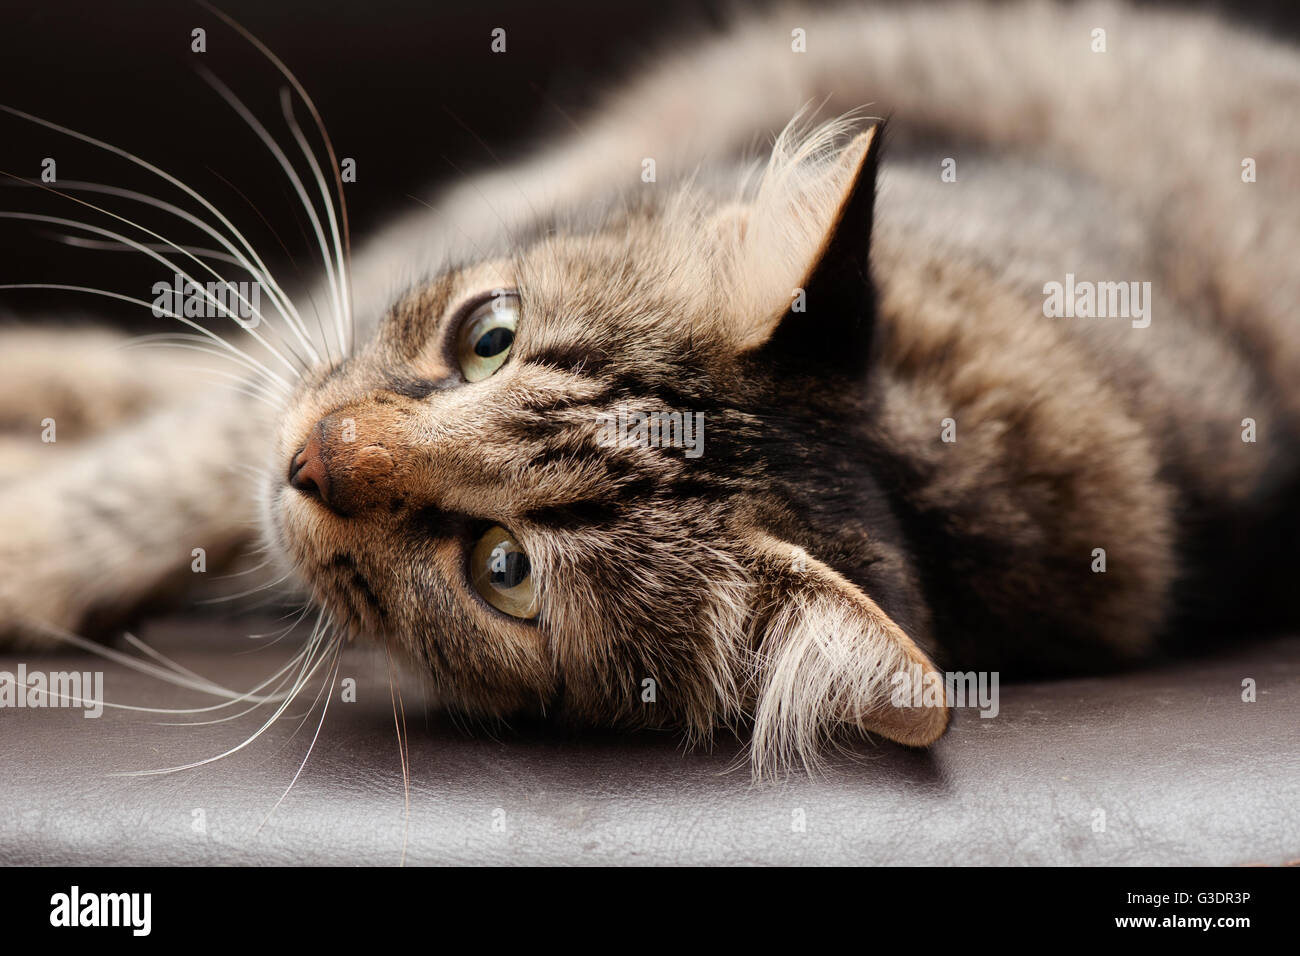 Tabby Cat Lying Down - Stock Image